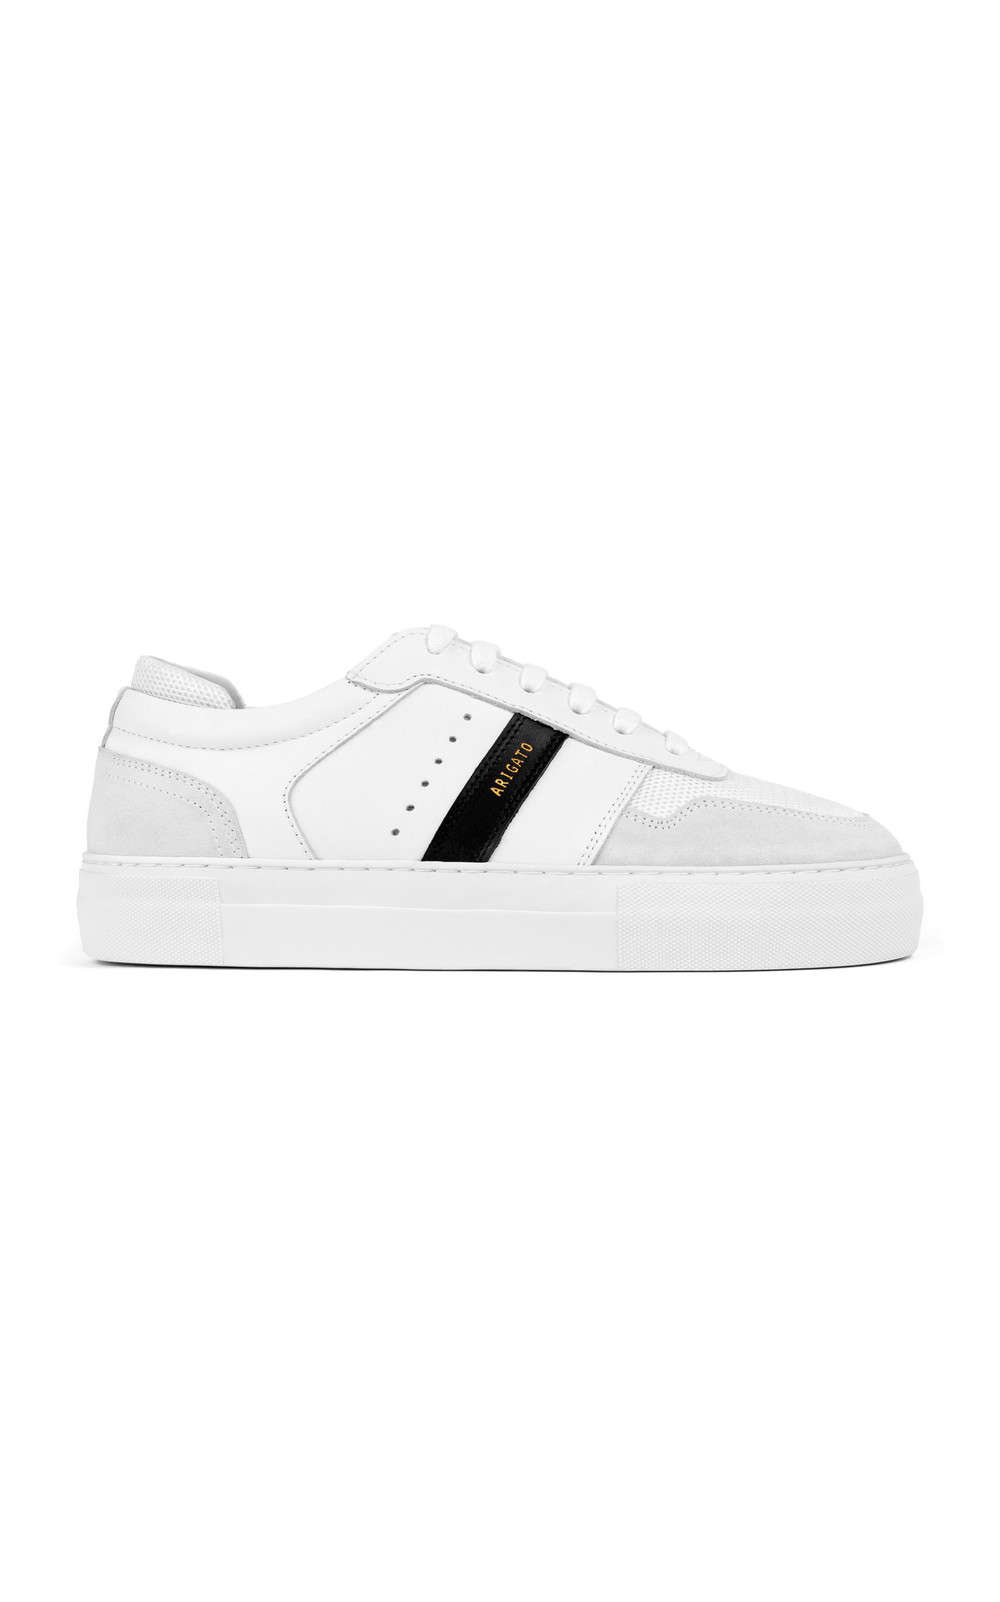 Axel Arigato Leather Platform Sneakers in white